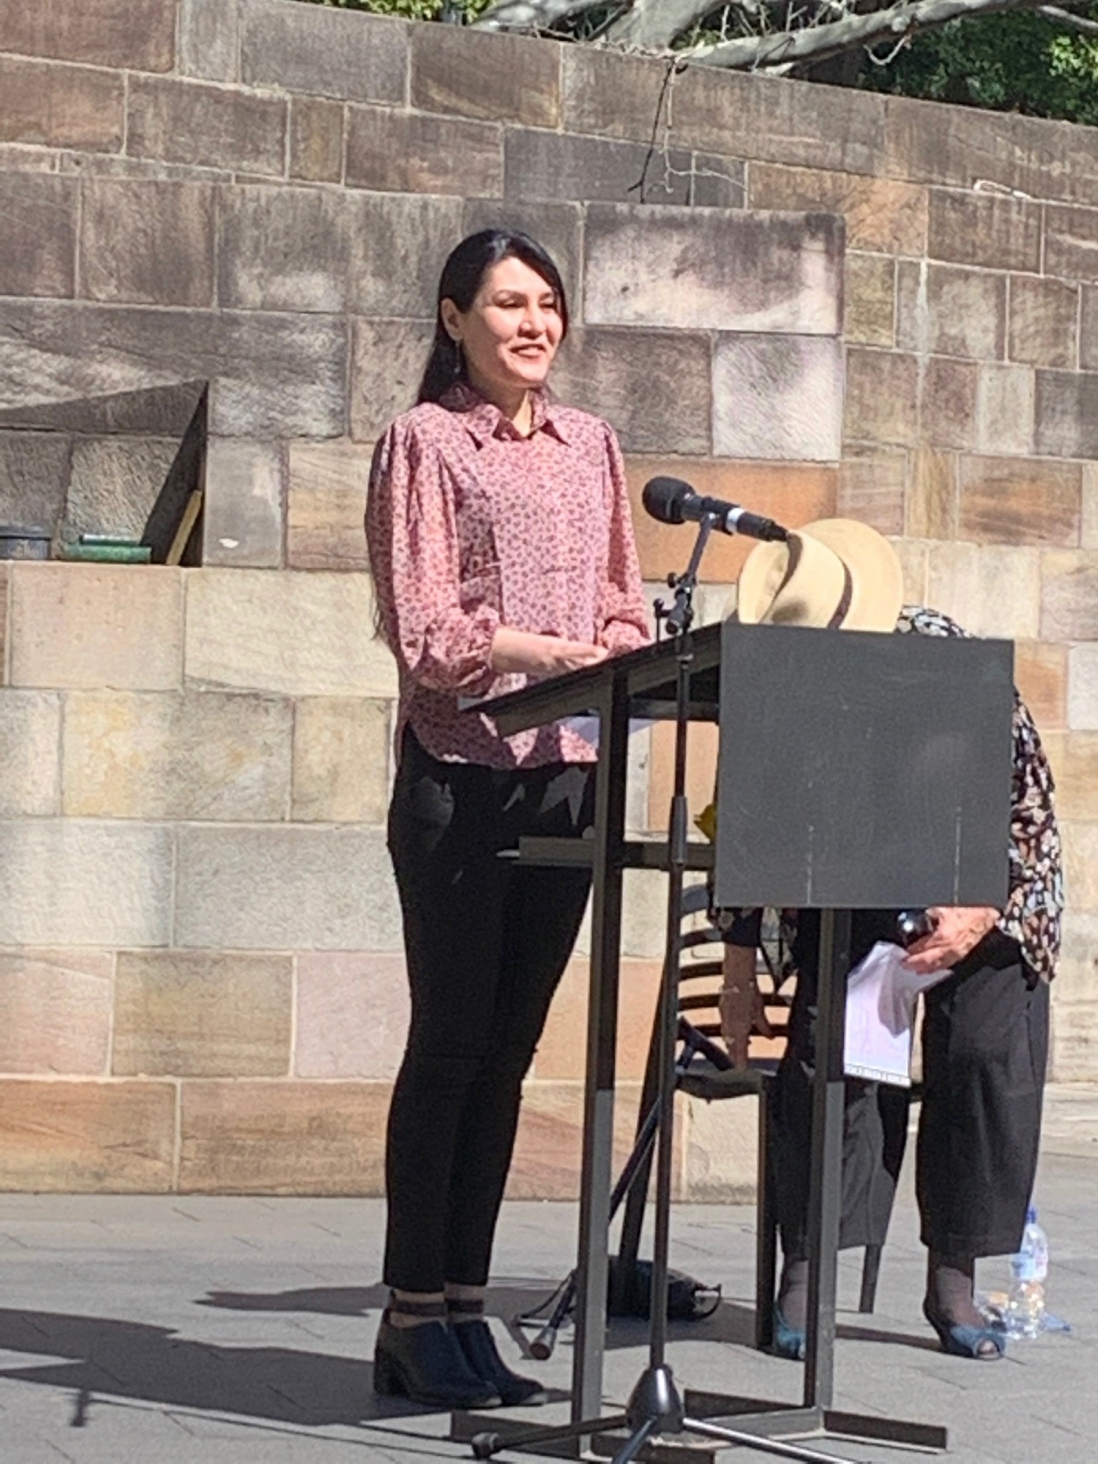 Woman speaking at outdoor podium.